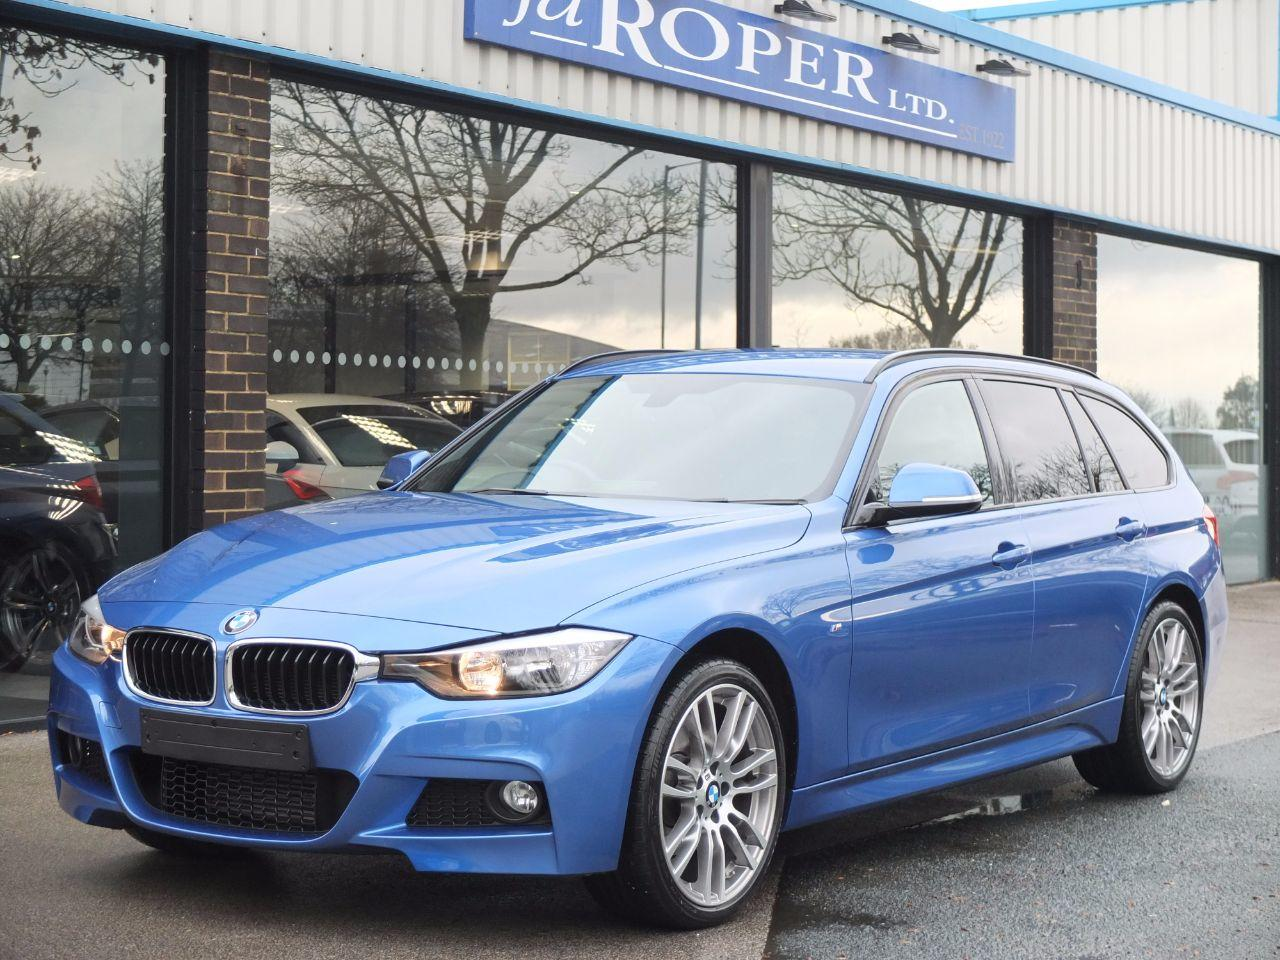 BMW 3 Series 2.0 320d xDrive M Sport Touring Auto (Media Pack) Estate Diesel Estoril Blue MetallicBMW 3 Series 2.0 320d xDrive M Sport Touring Auto (Media Pack) Estate Diesel Estoril Blue Metallic at fa Roper Ltd Bradford